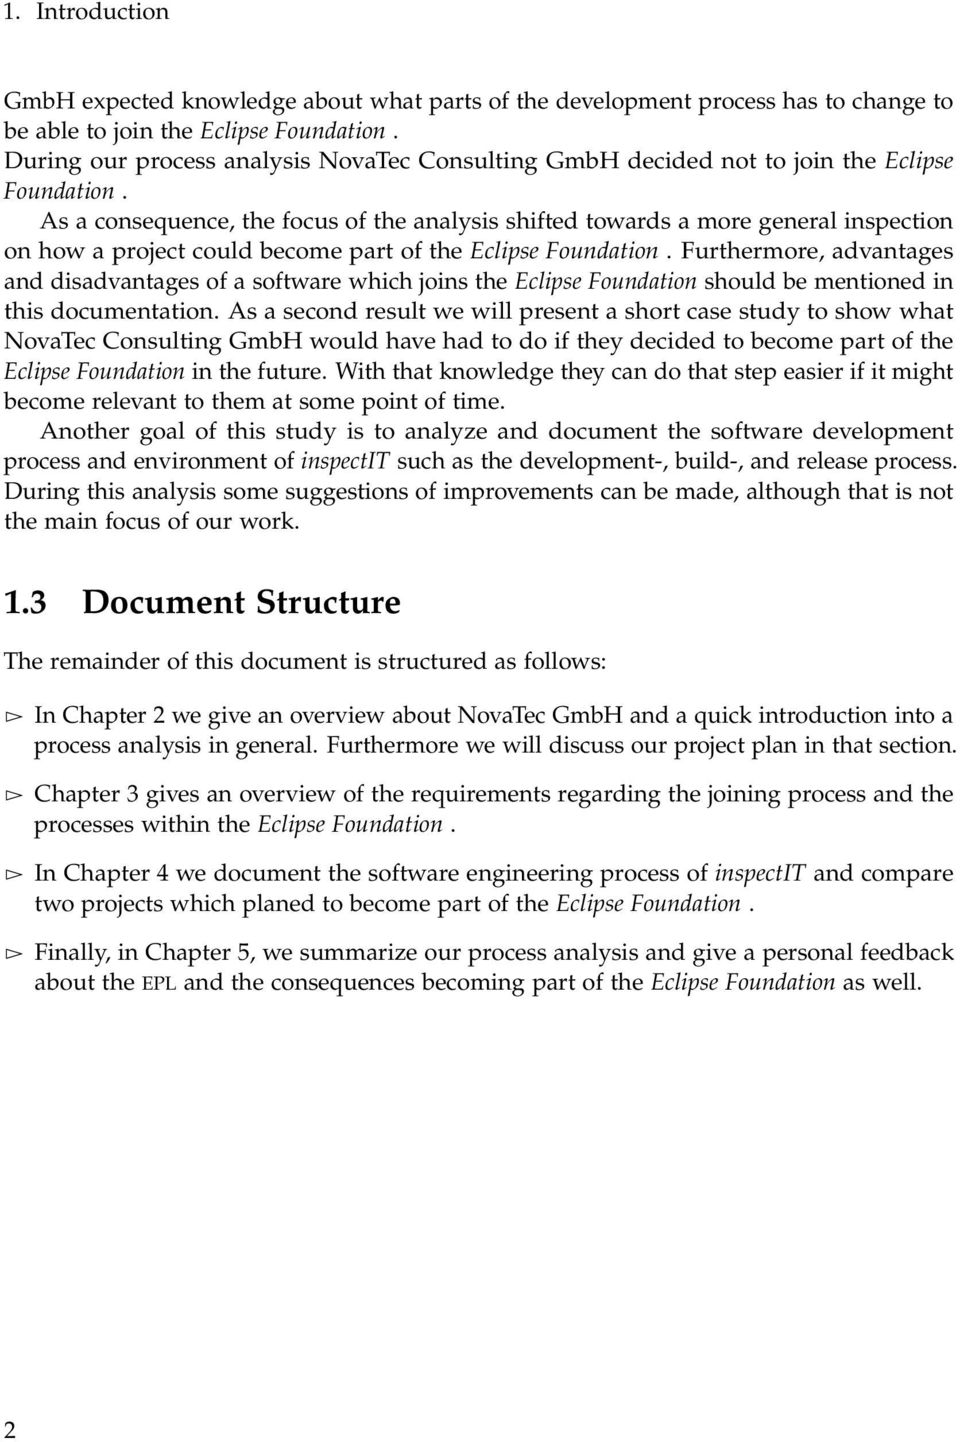 Analysis of the Software Development Process of inspectit and